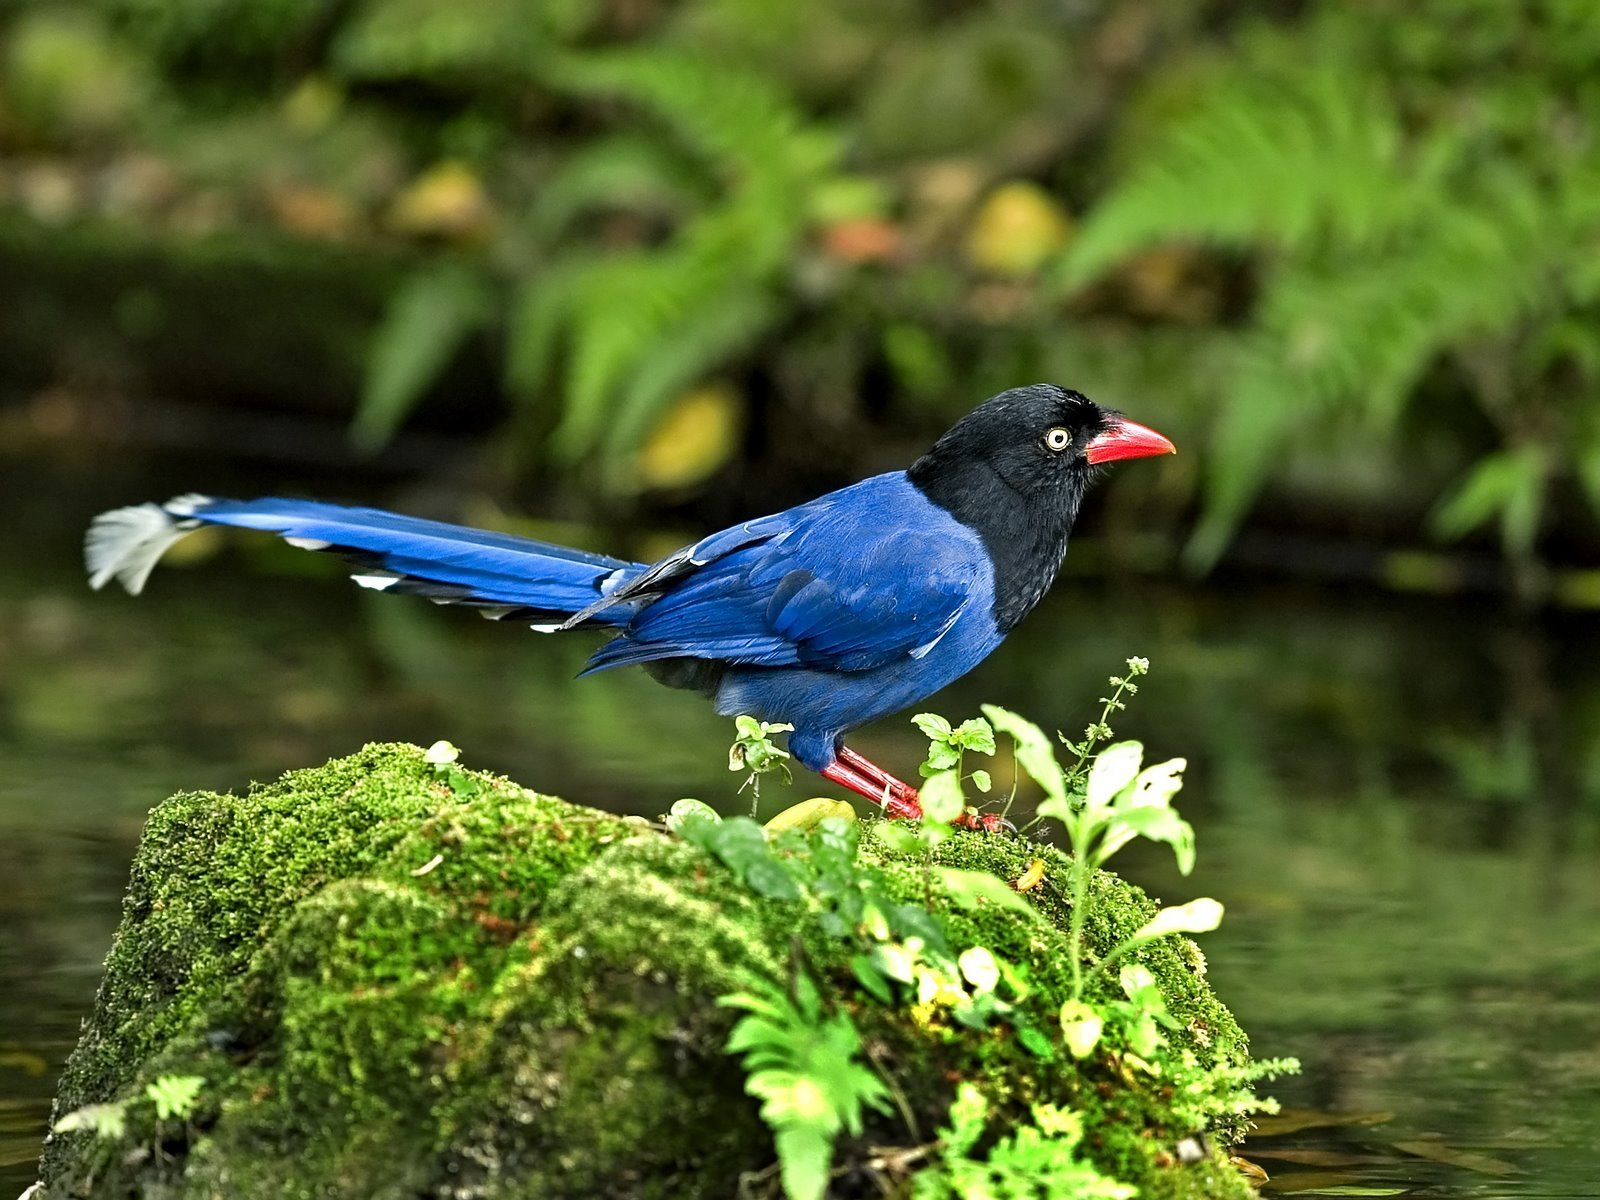 Taiwan Blue Magpie svg #5, Download drawings